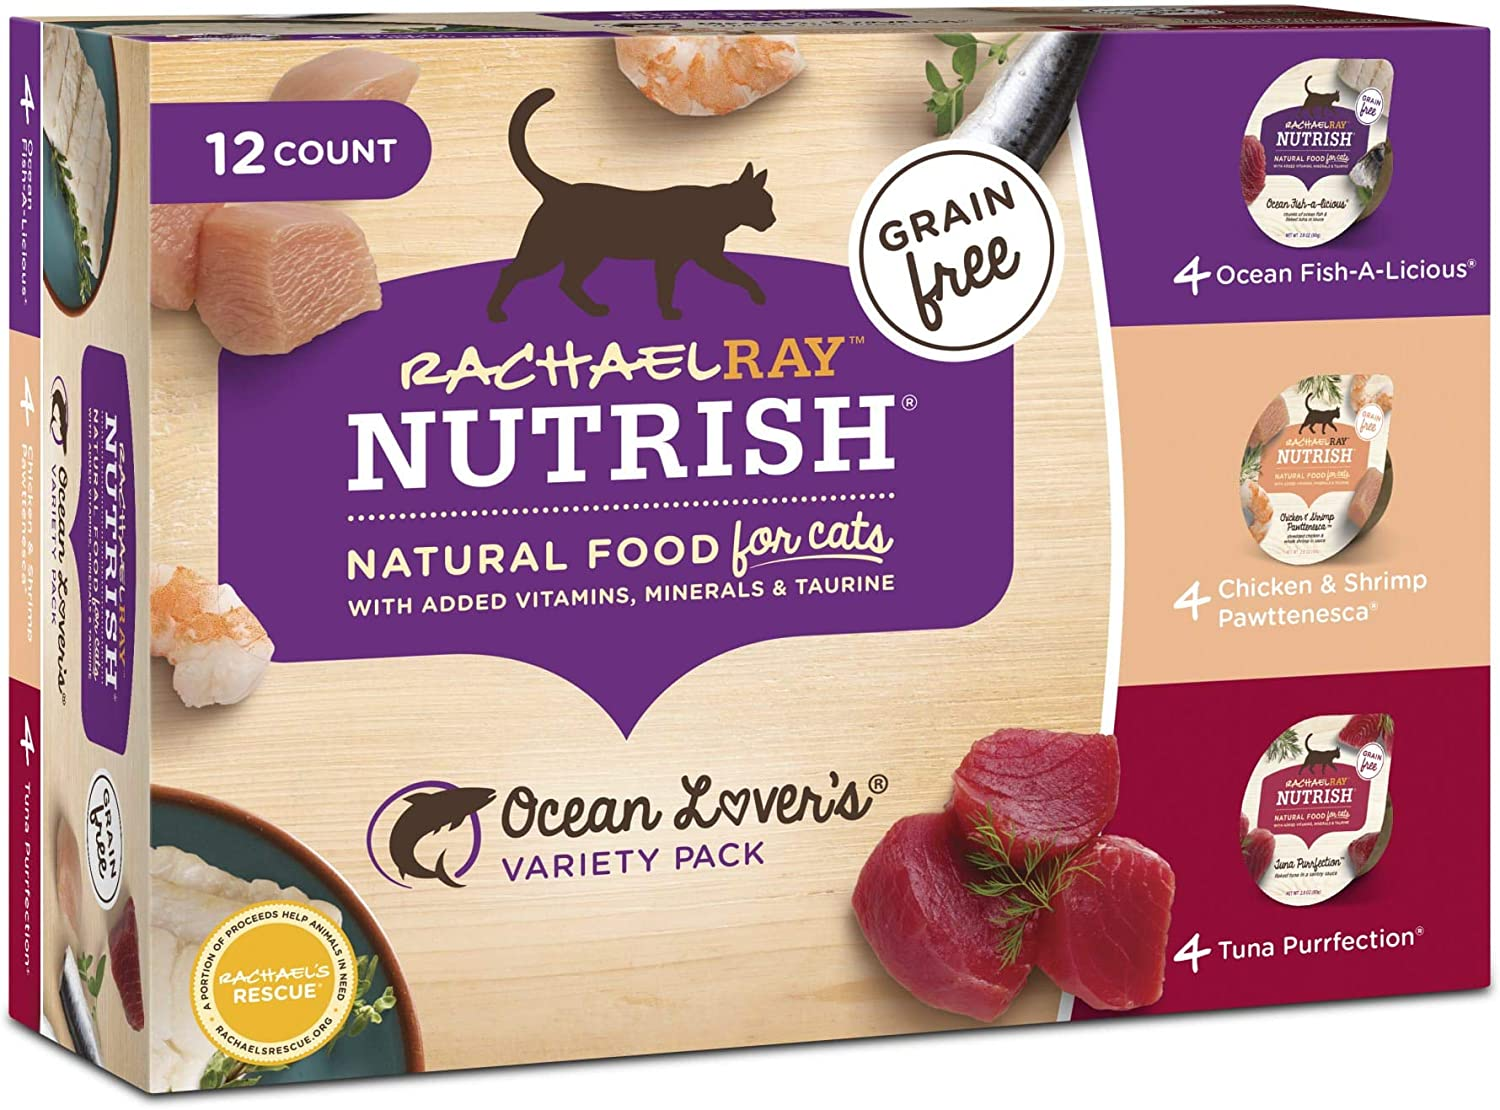 Rachael Ray Nutrish Natural Grain Free Ocean Lovers Variety Pack Wet Cat Food, 2.8 oz., Pack of 12